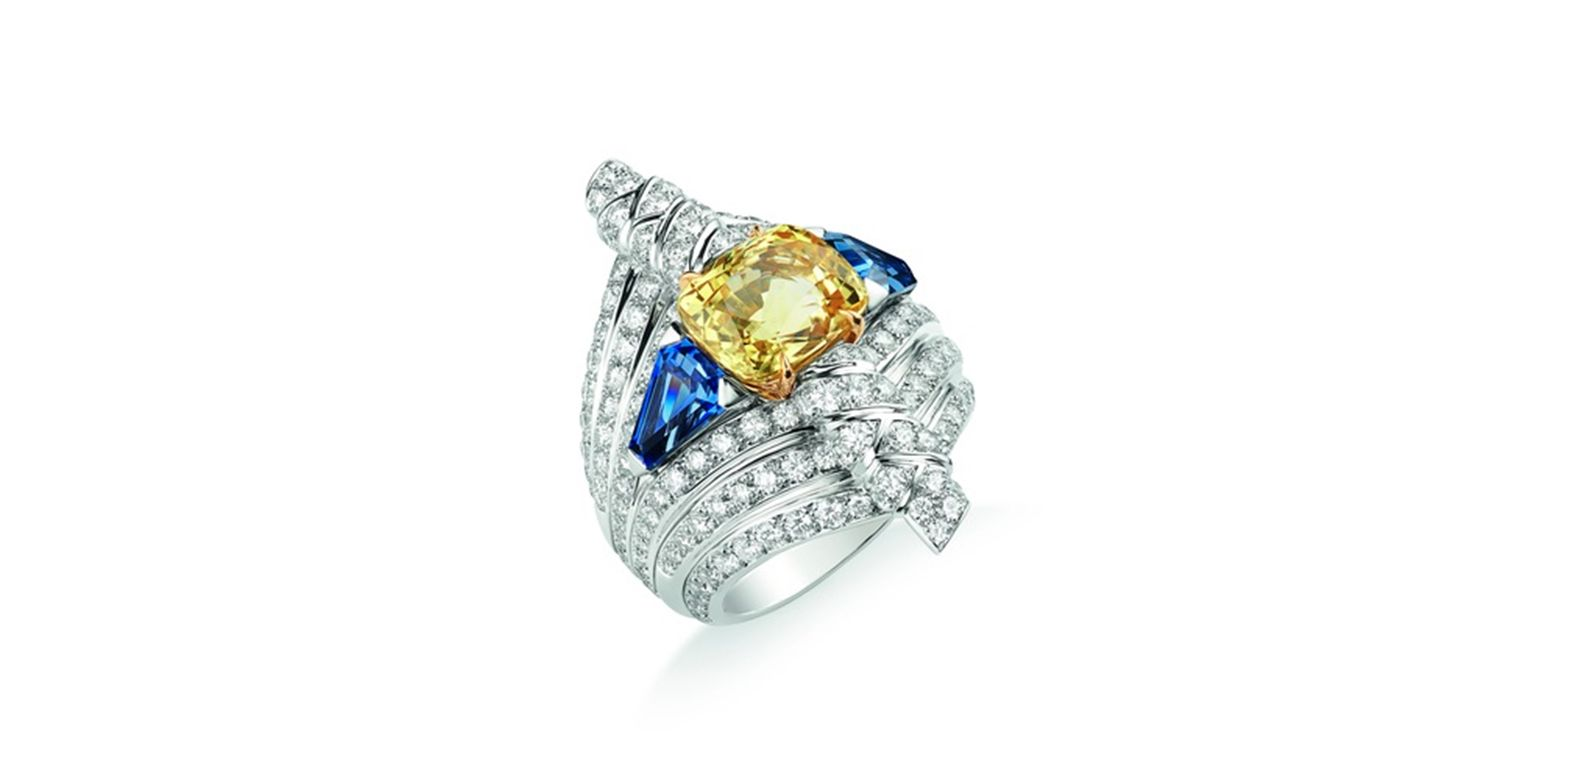 Ring in white gold and yellow gold, set with a 5.61-carat cushion-cut yellow Ceylon sapphire, two troidia-cut sapphires of 1.30 carats each, and brilliant-cut diamonds. Ronde de Pierres, Trésors d'Afrique, Chaumet